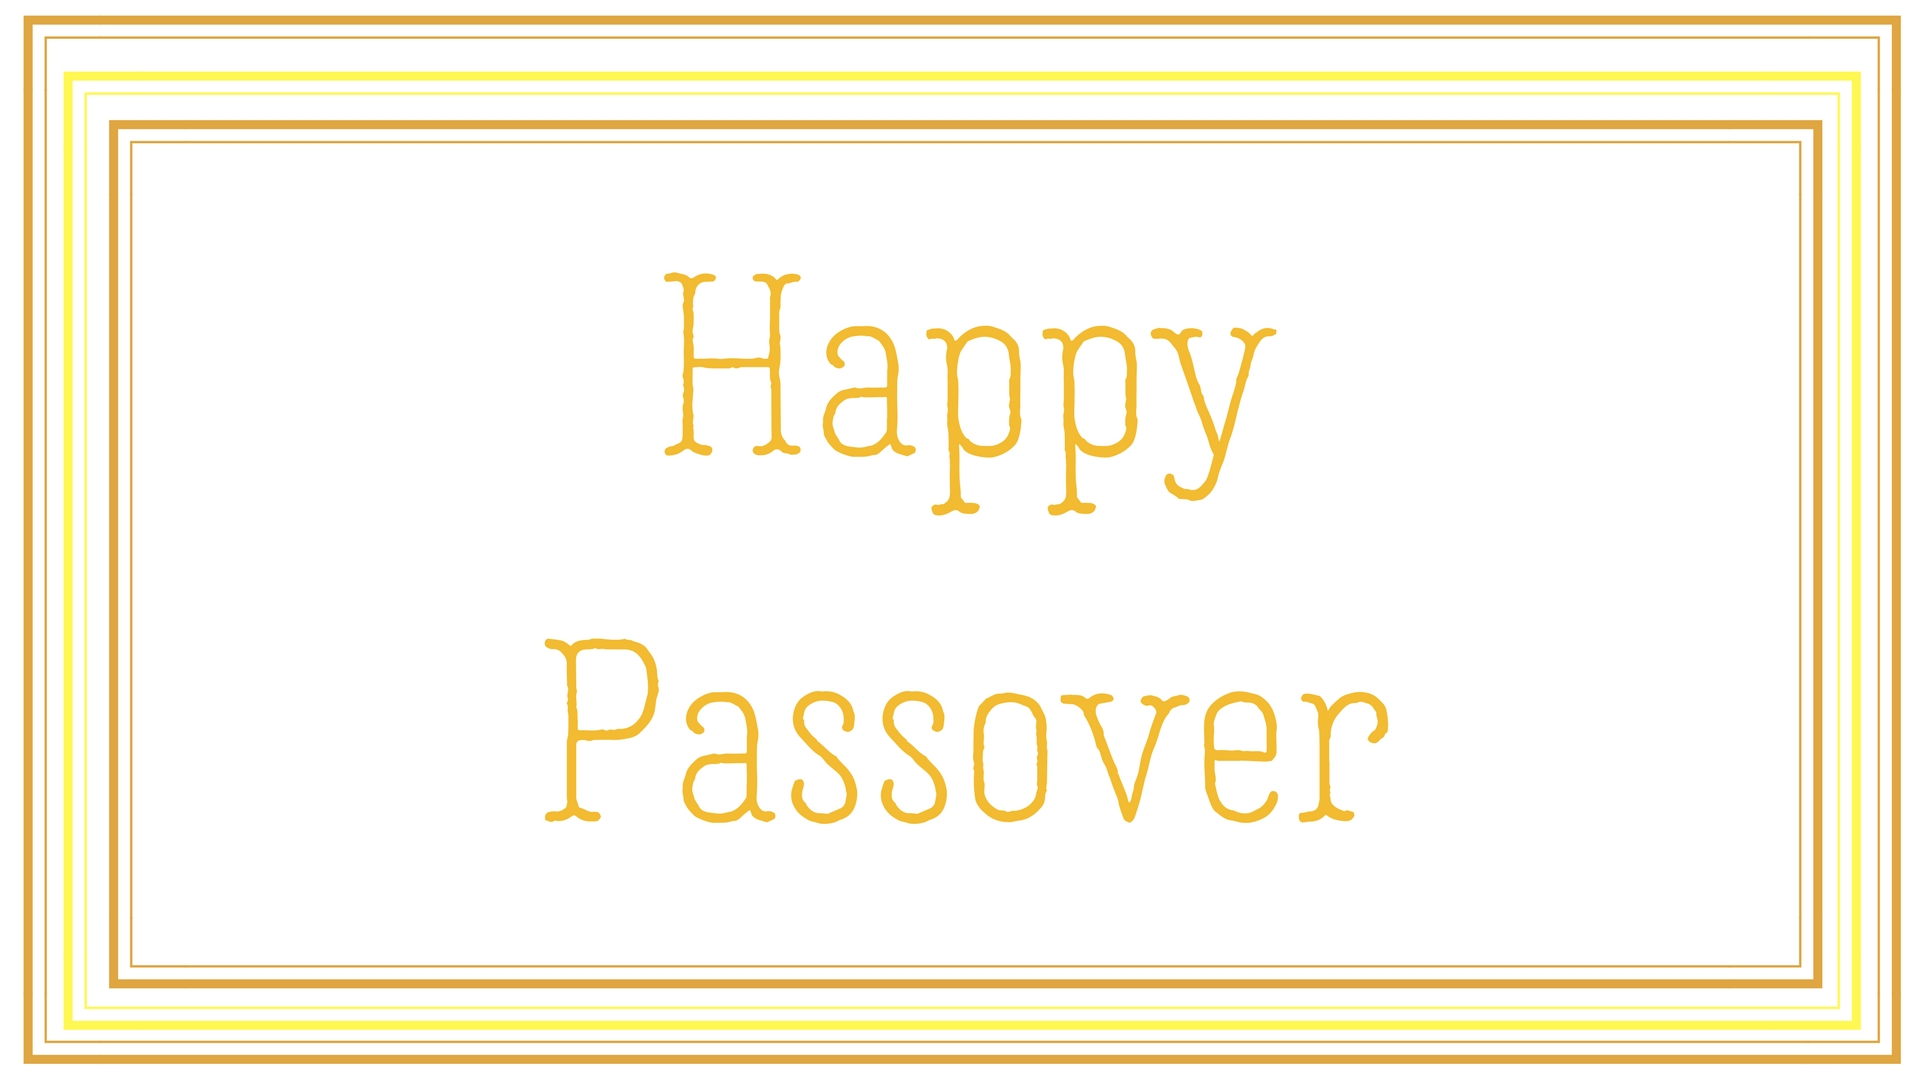 Happy Passover Rectangle Frame Greeting Card Postcard 2